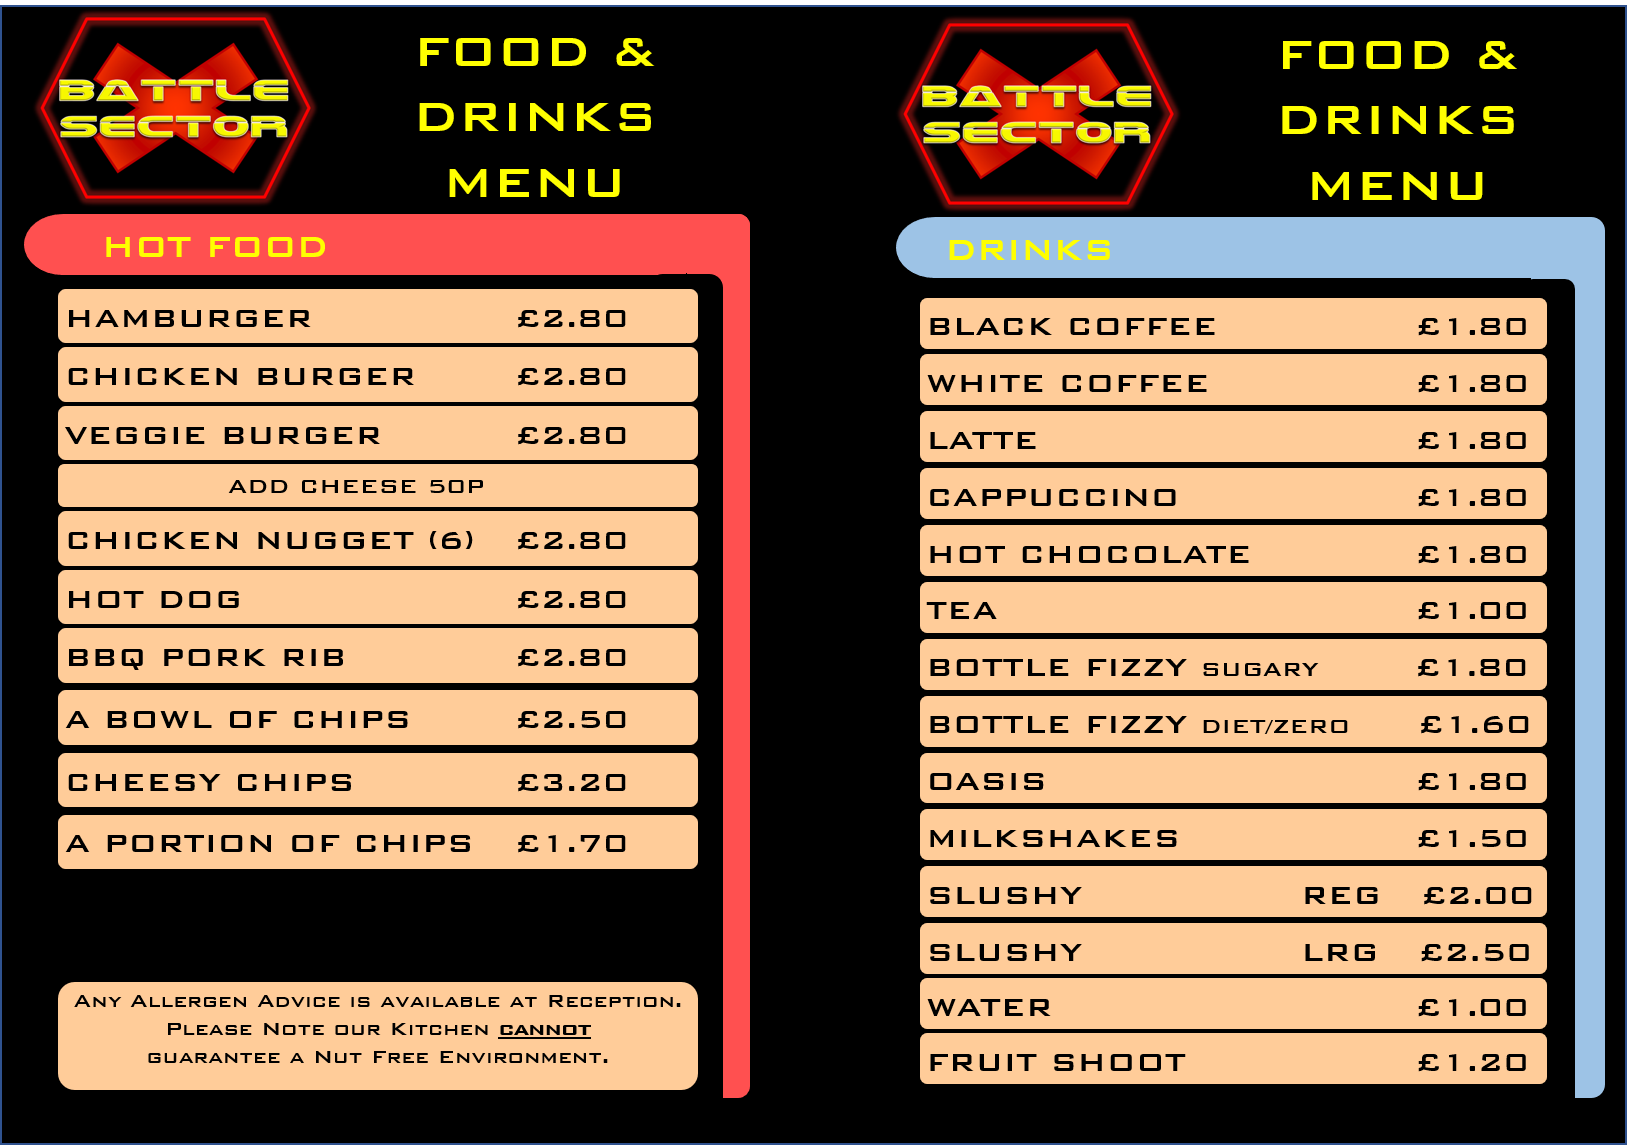 Menu Nov 2018 Ver 3.png